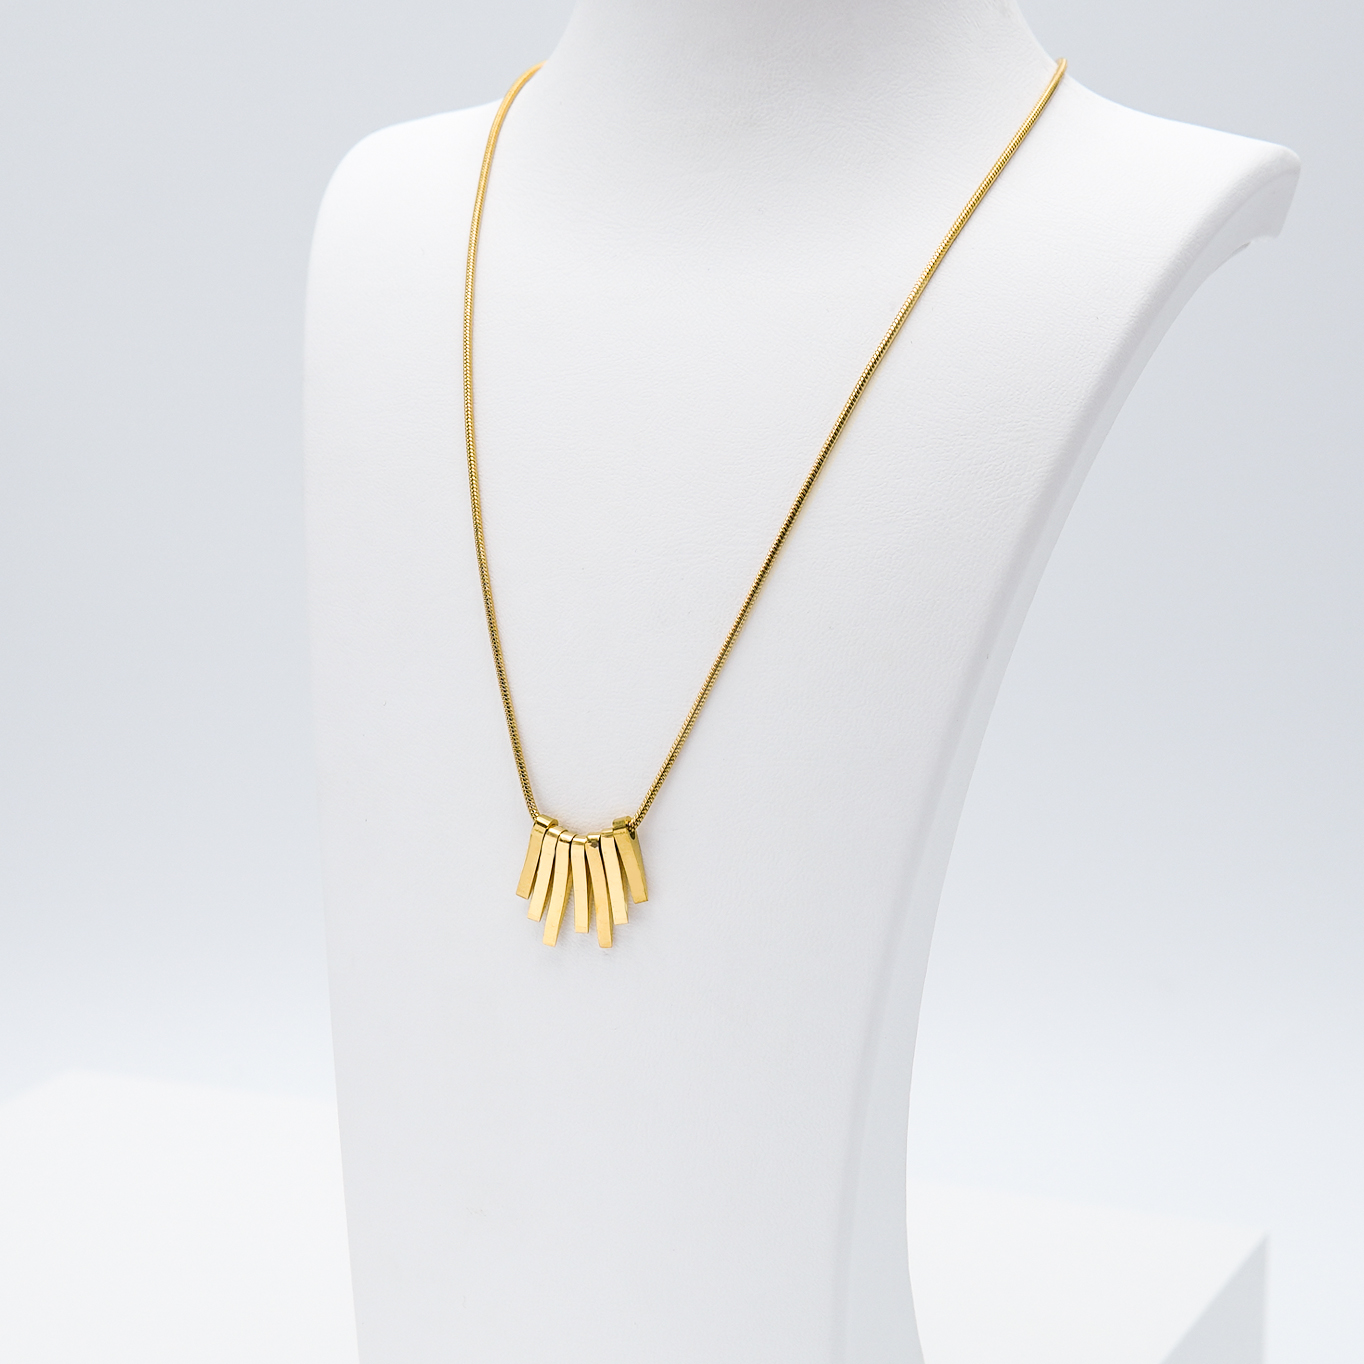 2- Fashionista Dance Edition Halsband Modern and trendy Necklace and women jewelry and accessories from SWEVALI fashion Sweden